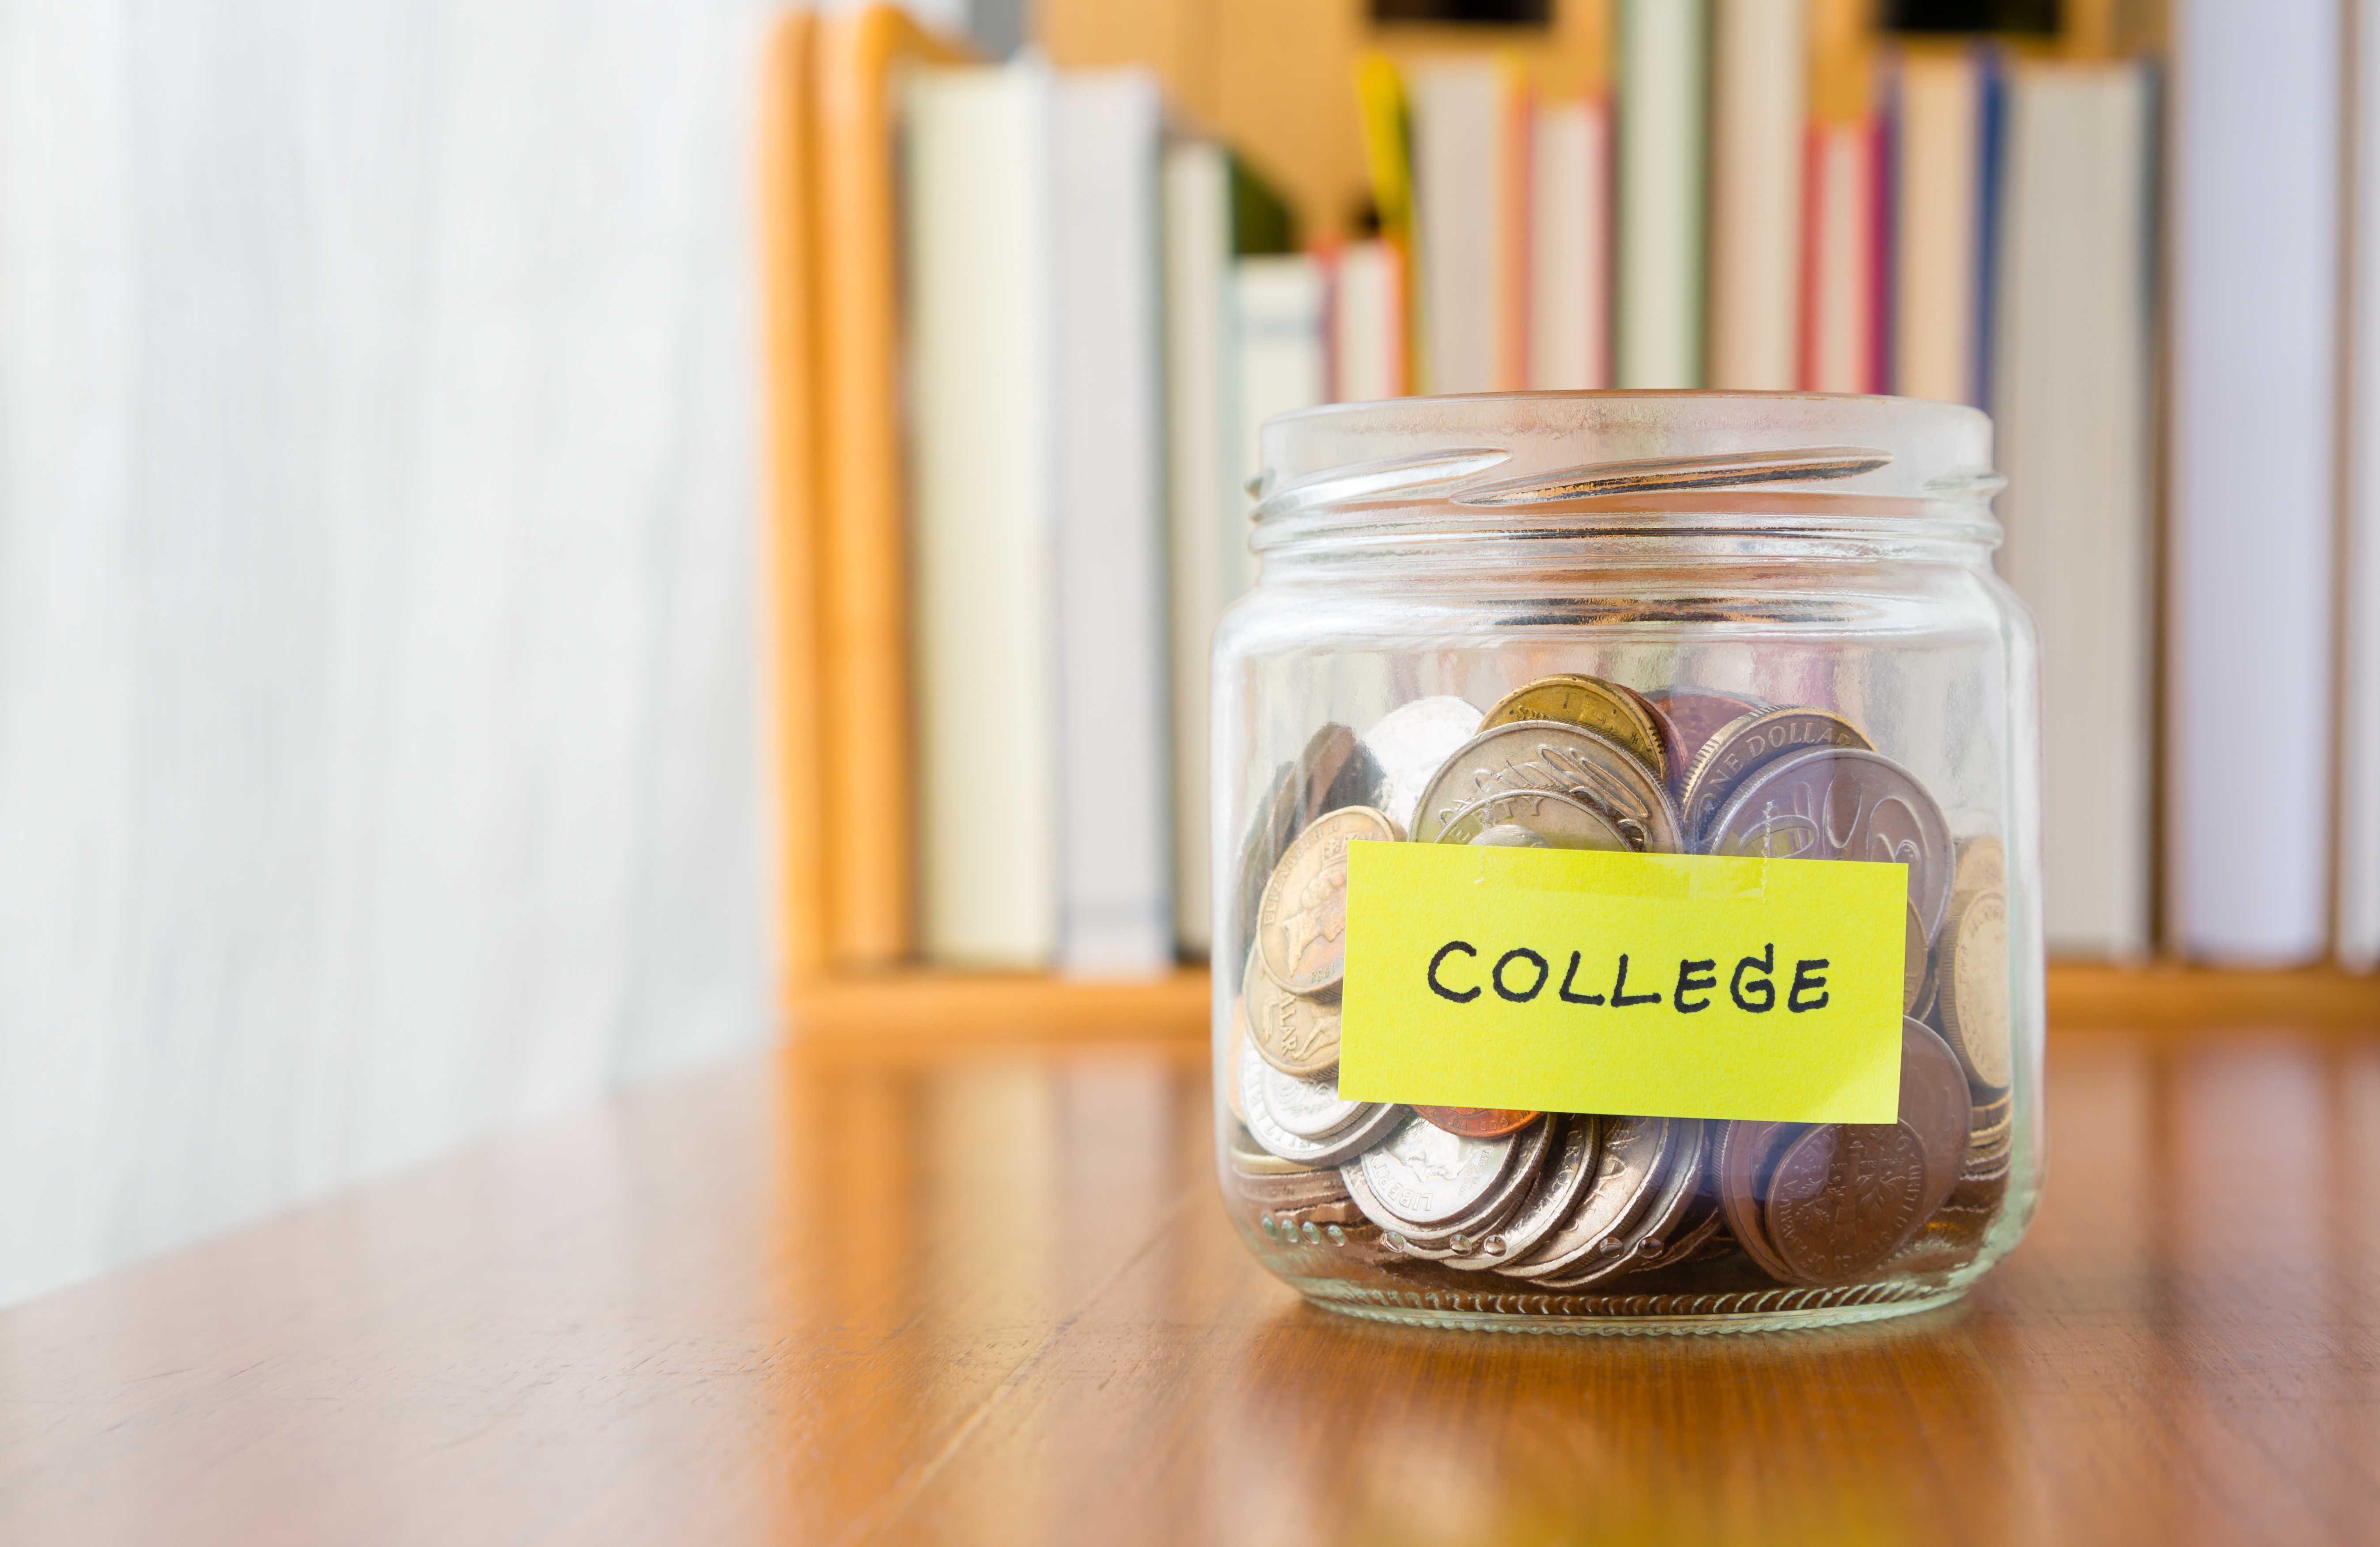 The 6 steps to save money while in college